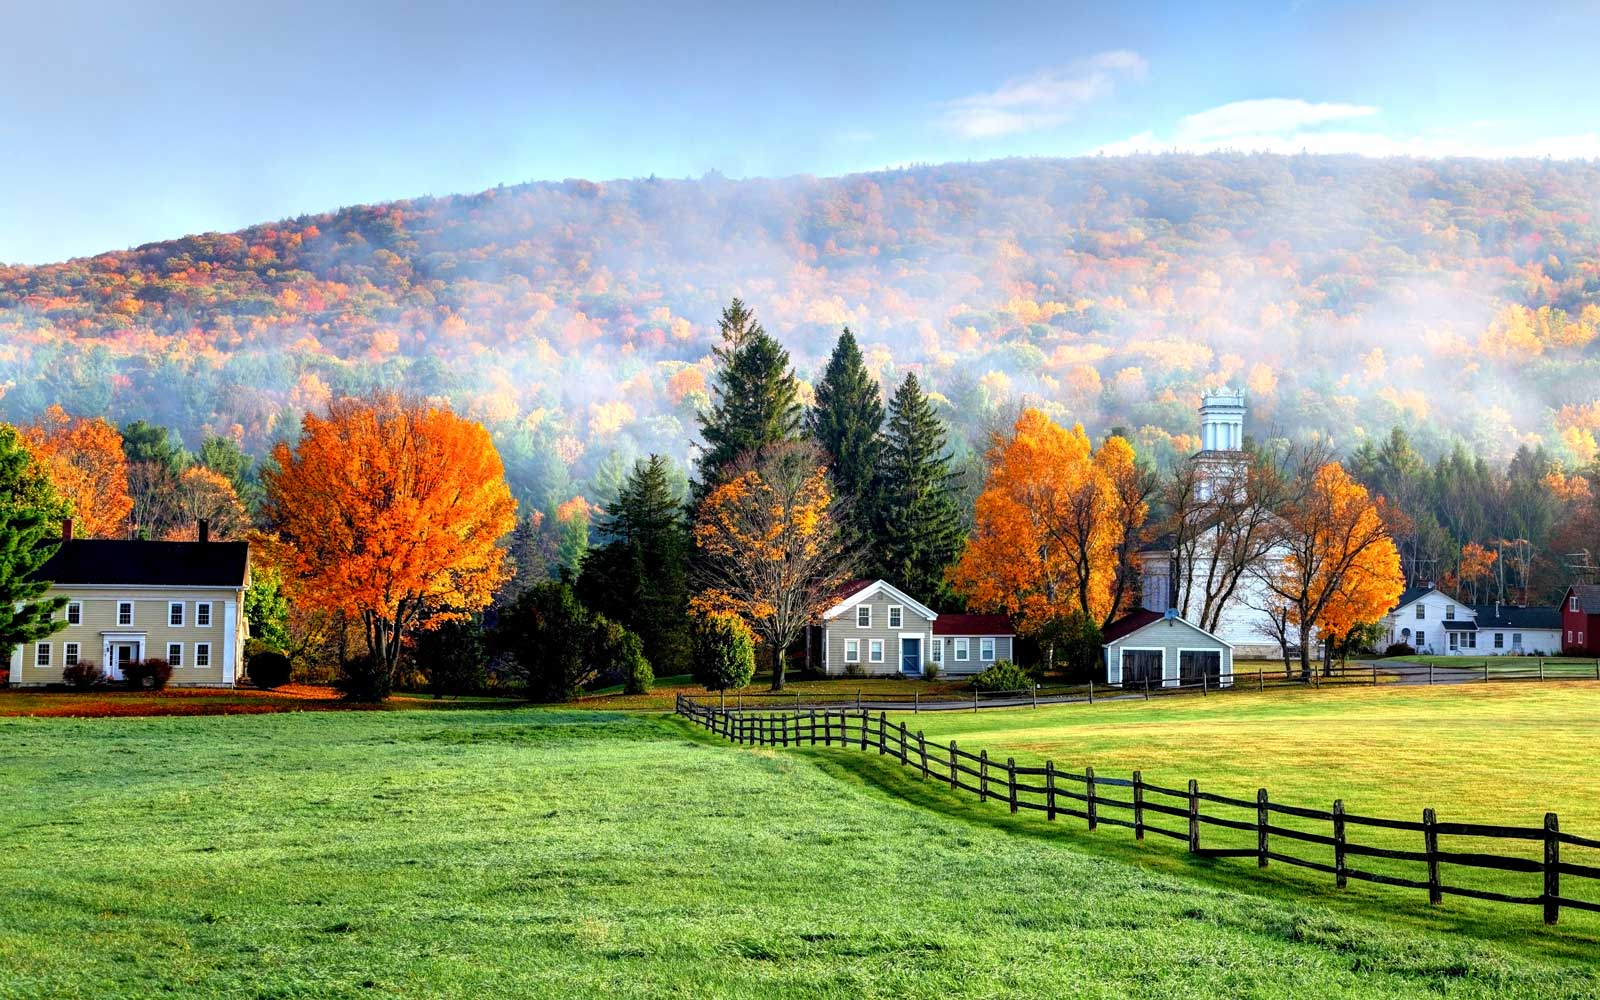 Autumn mist in the village of Tyringham in the Berkshires, Massachusetts